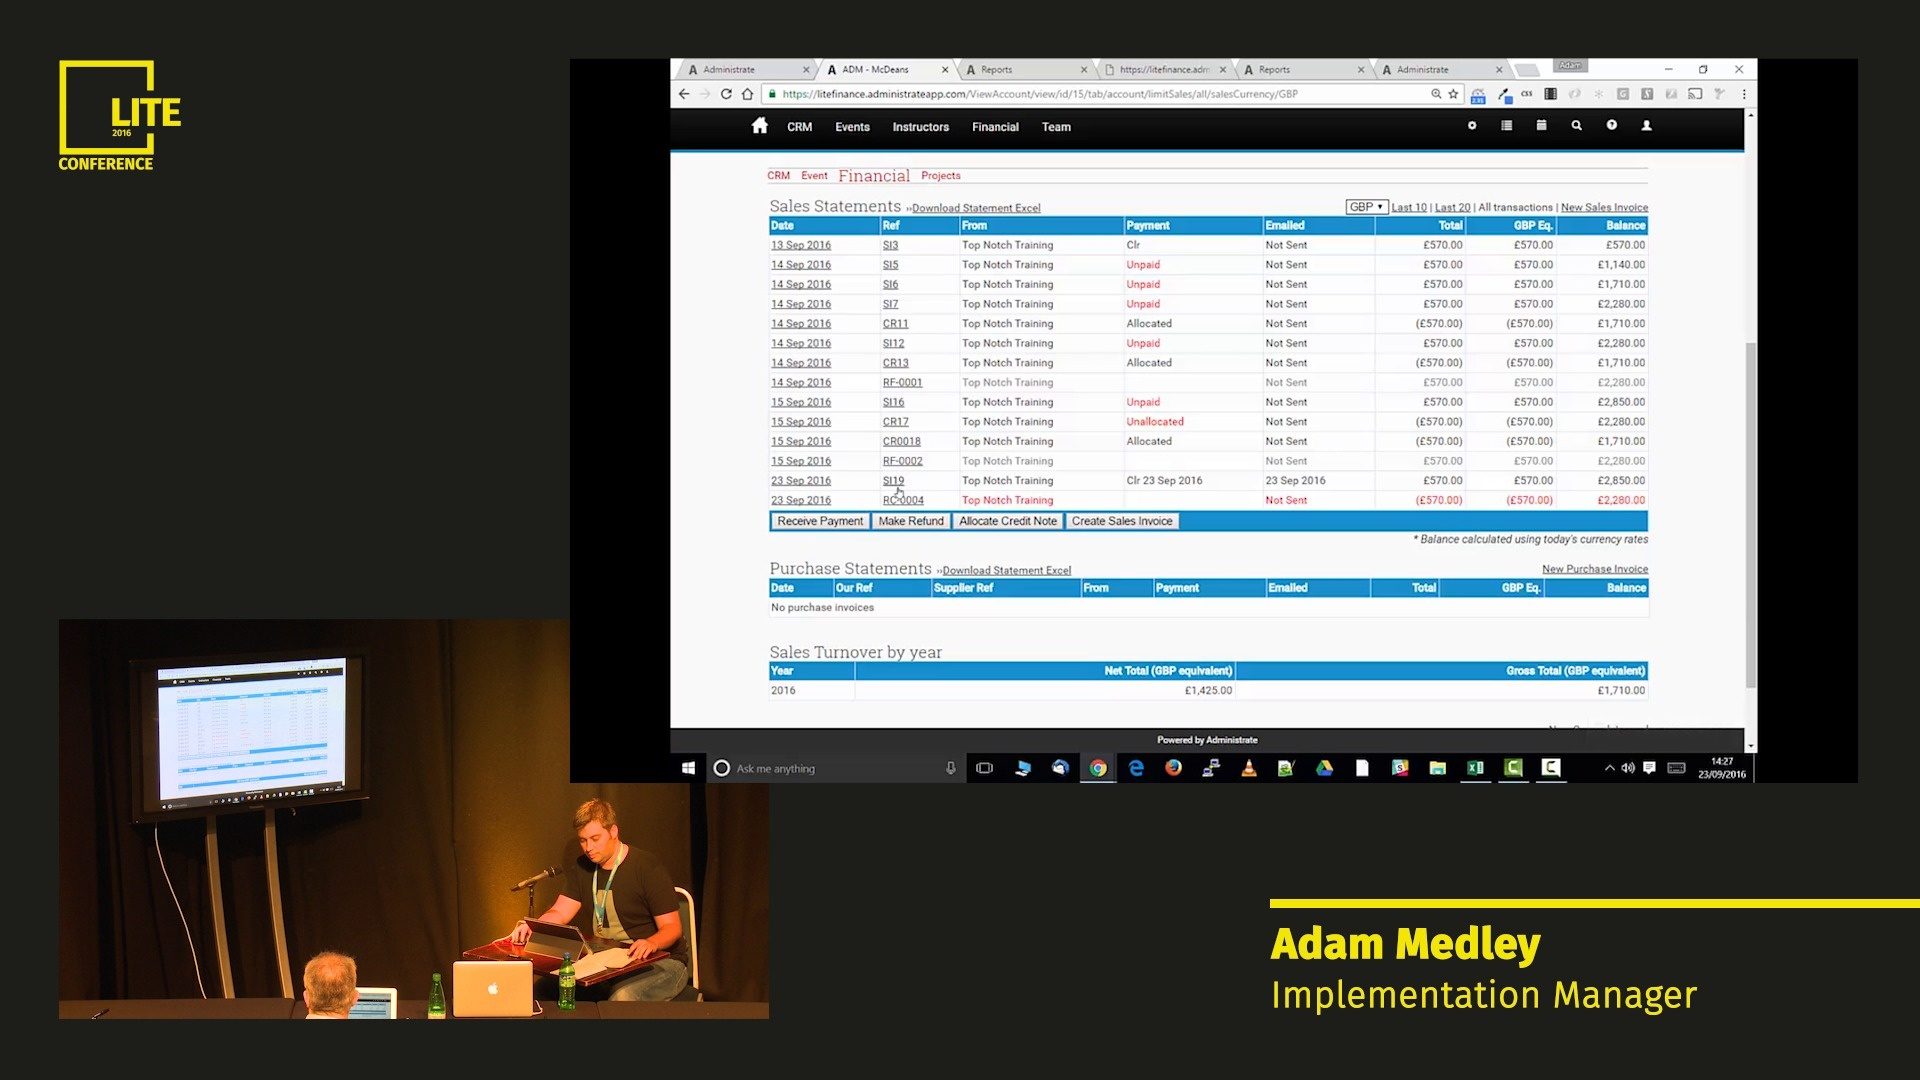 Using the Financial Reporting Feature [Nate Smith & Adam Medley]